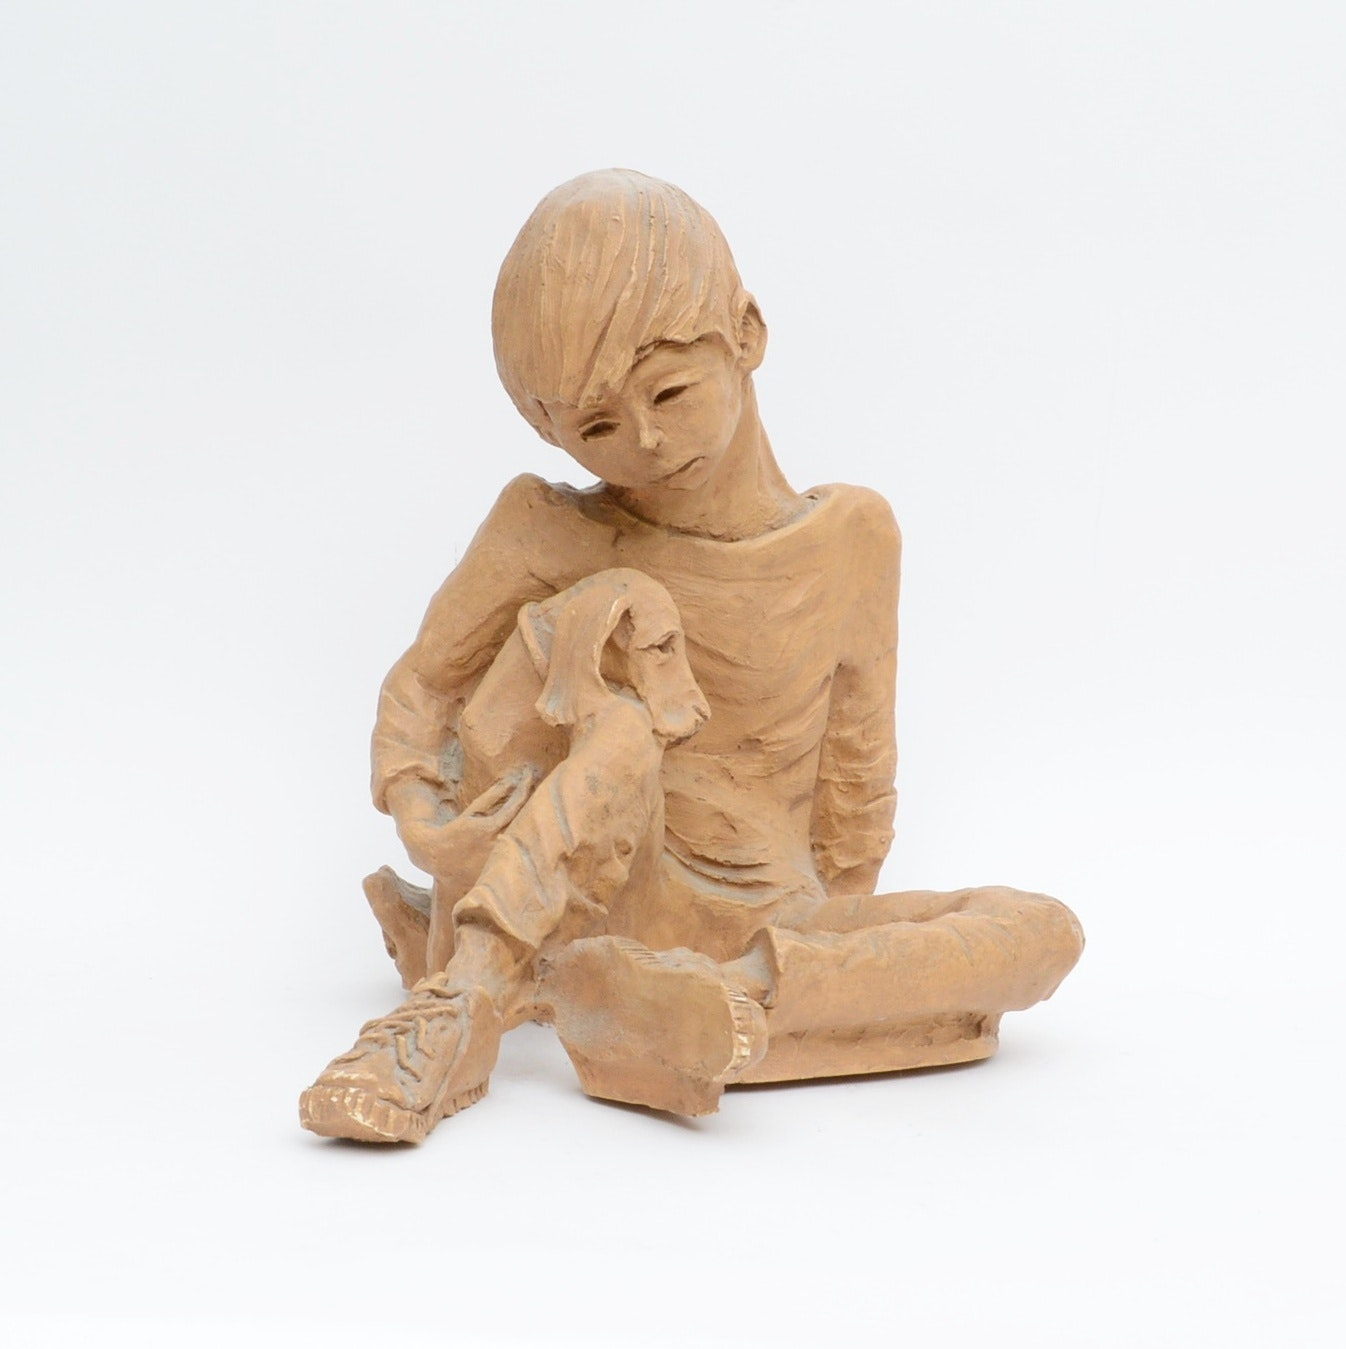 Plaster Sculpture of Young Boy with Puppy